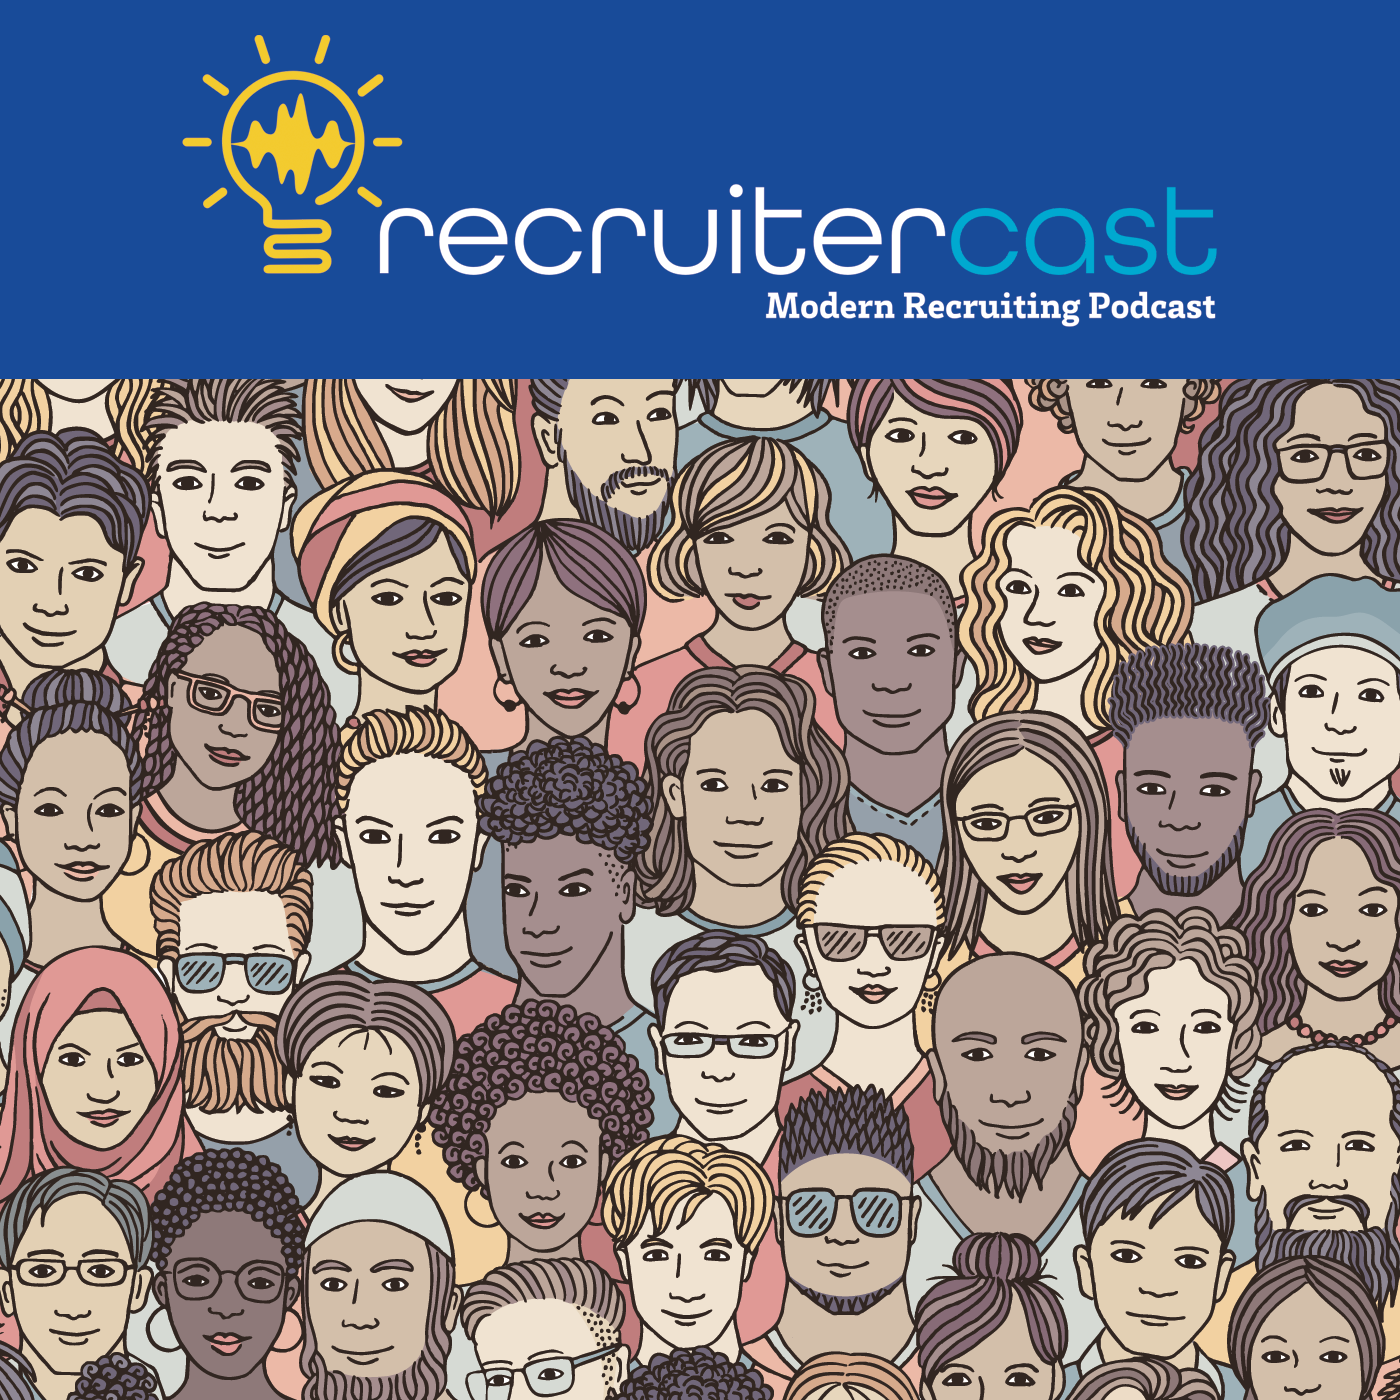 Introducing RecruiterCast